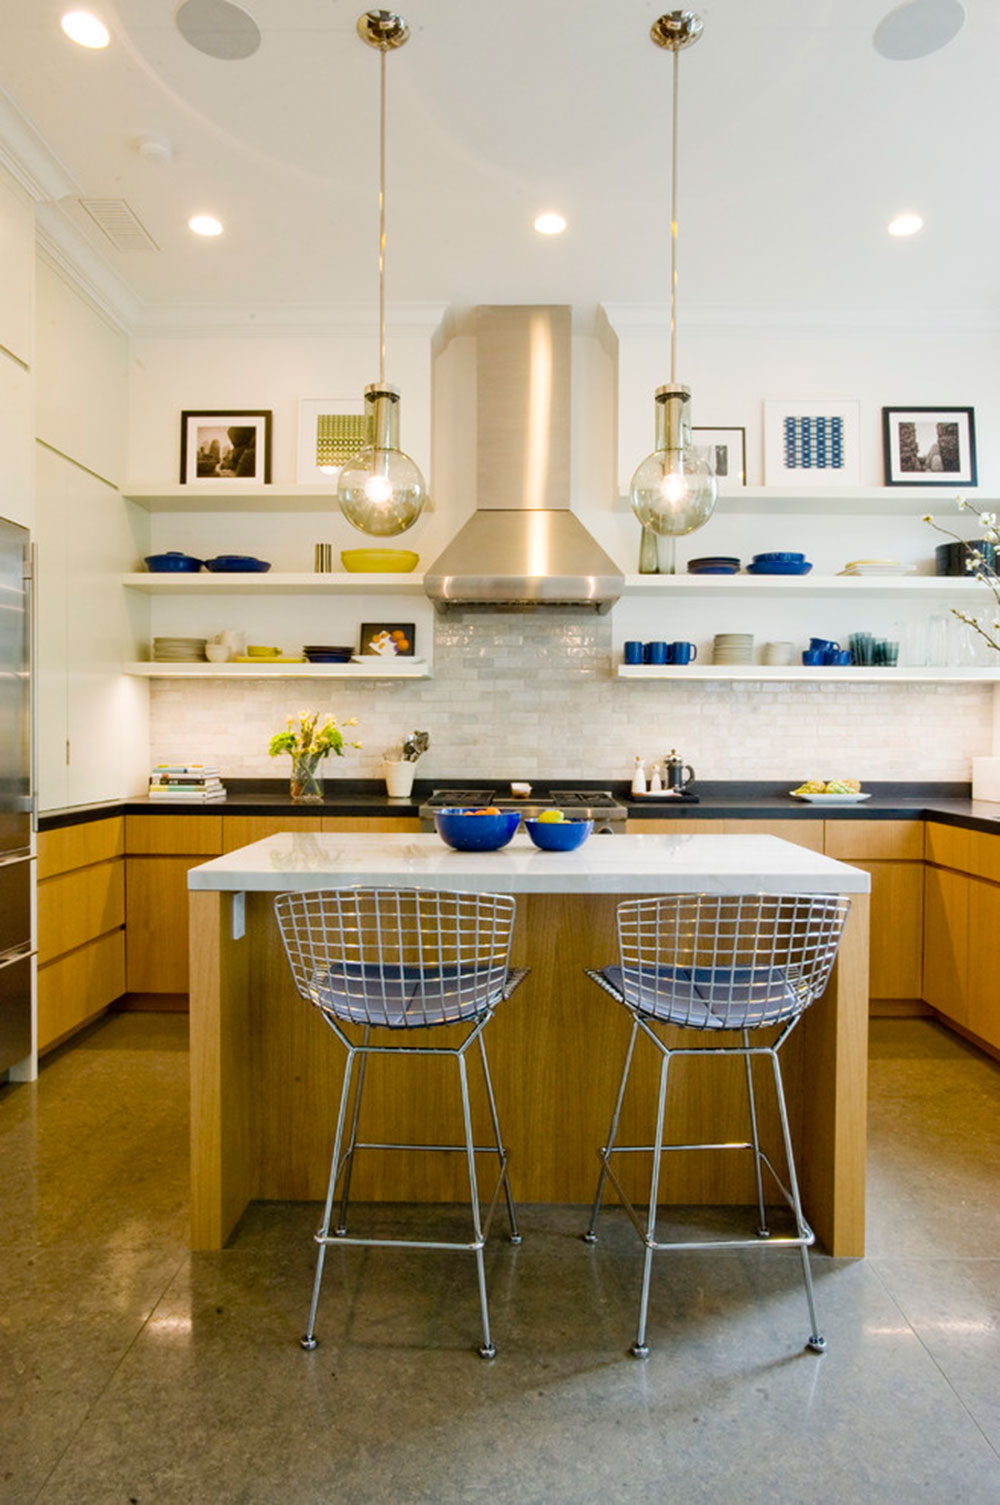 White-Tile-Backsplashes-don't-have-to-be-boring4 White Tile Backsplash Design Ideas